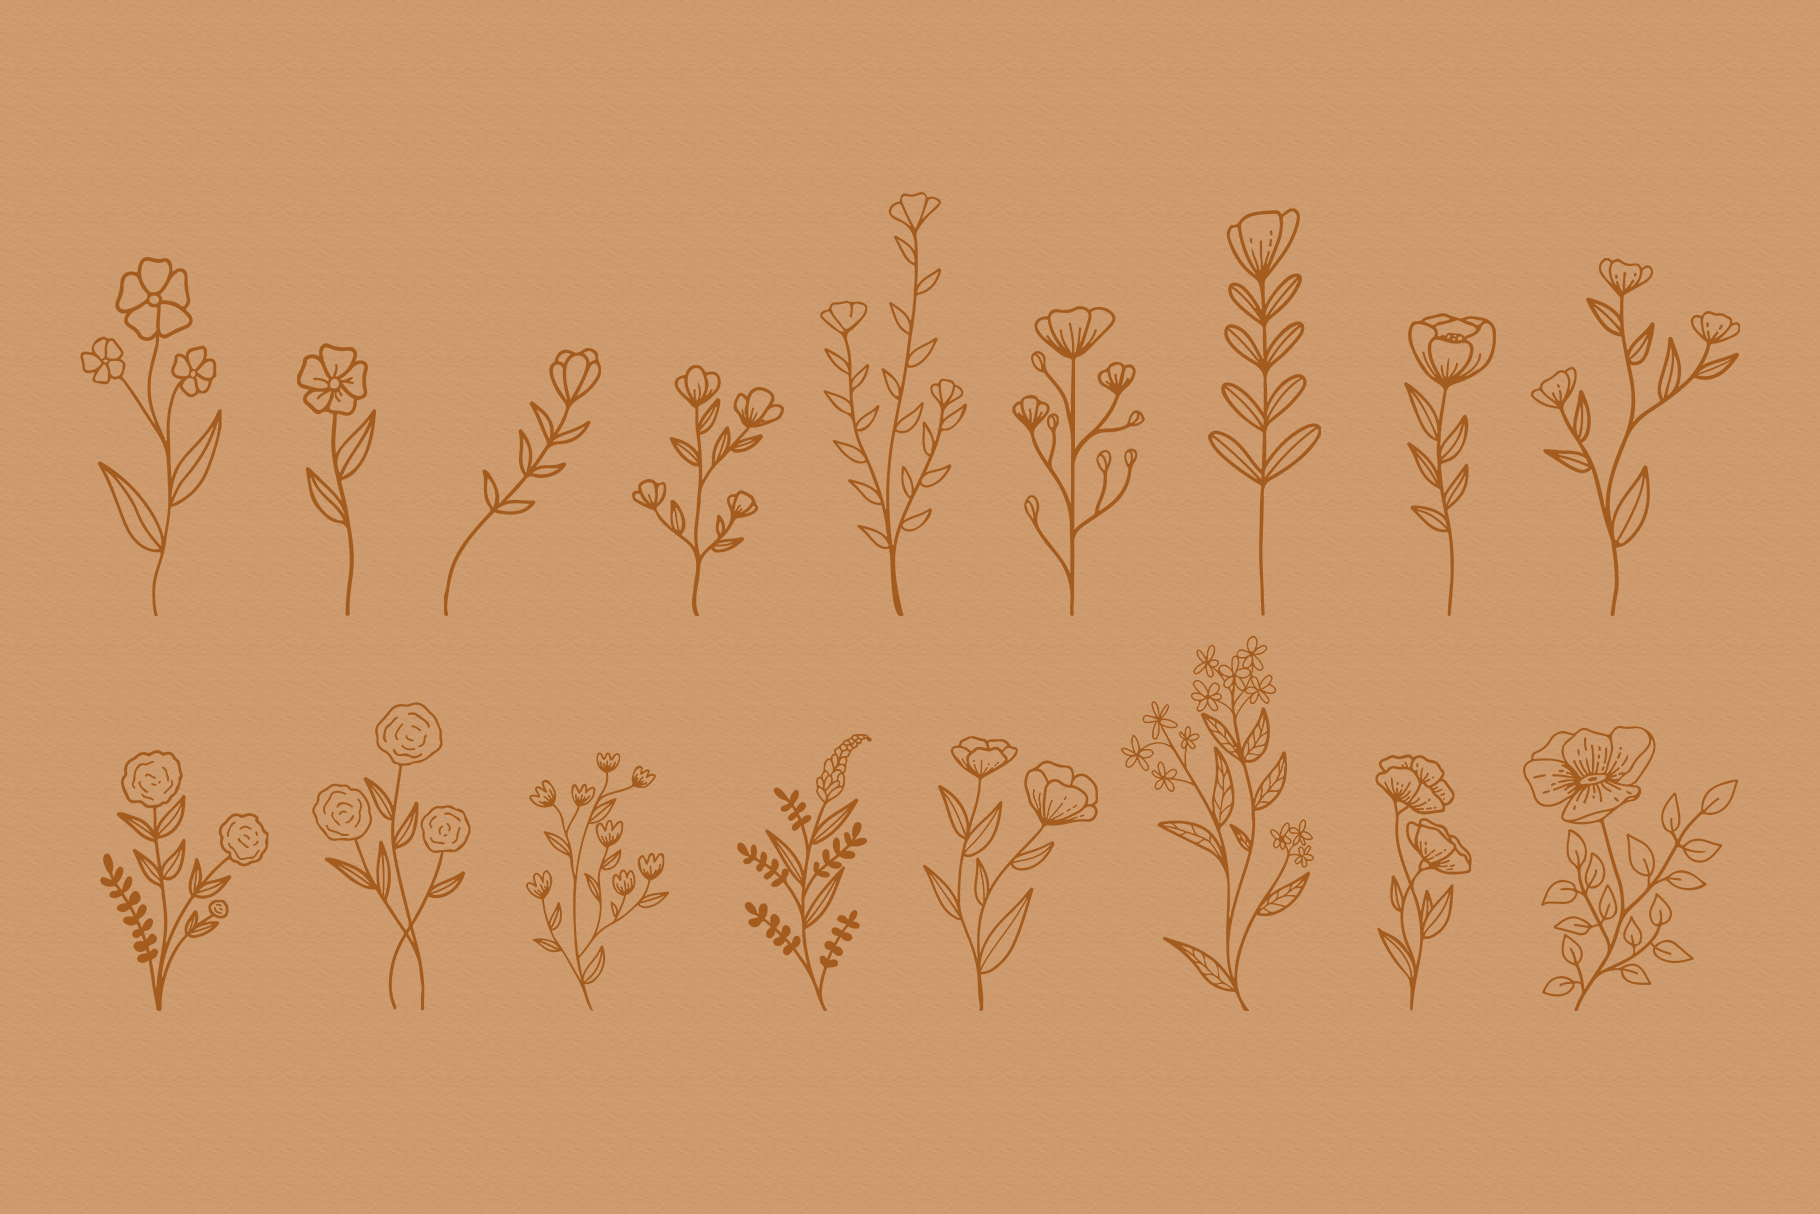 Floral Vector Elements Volume 002 example image 10